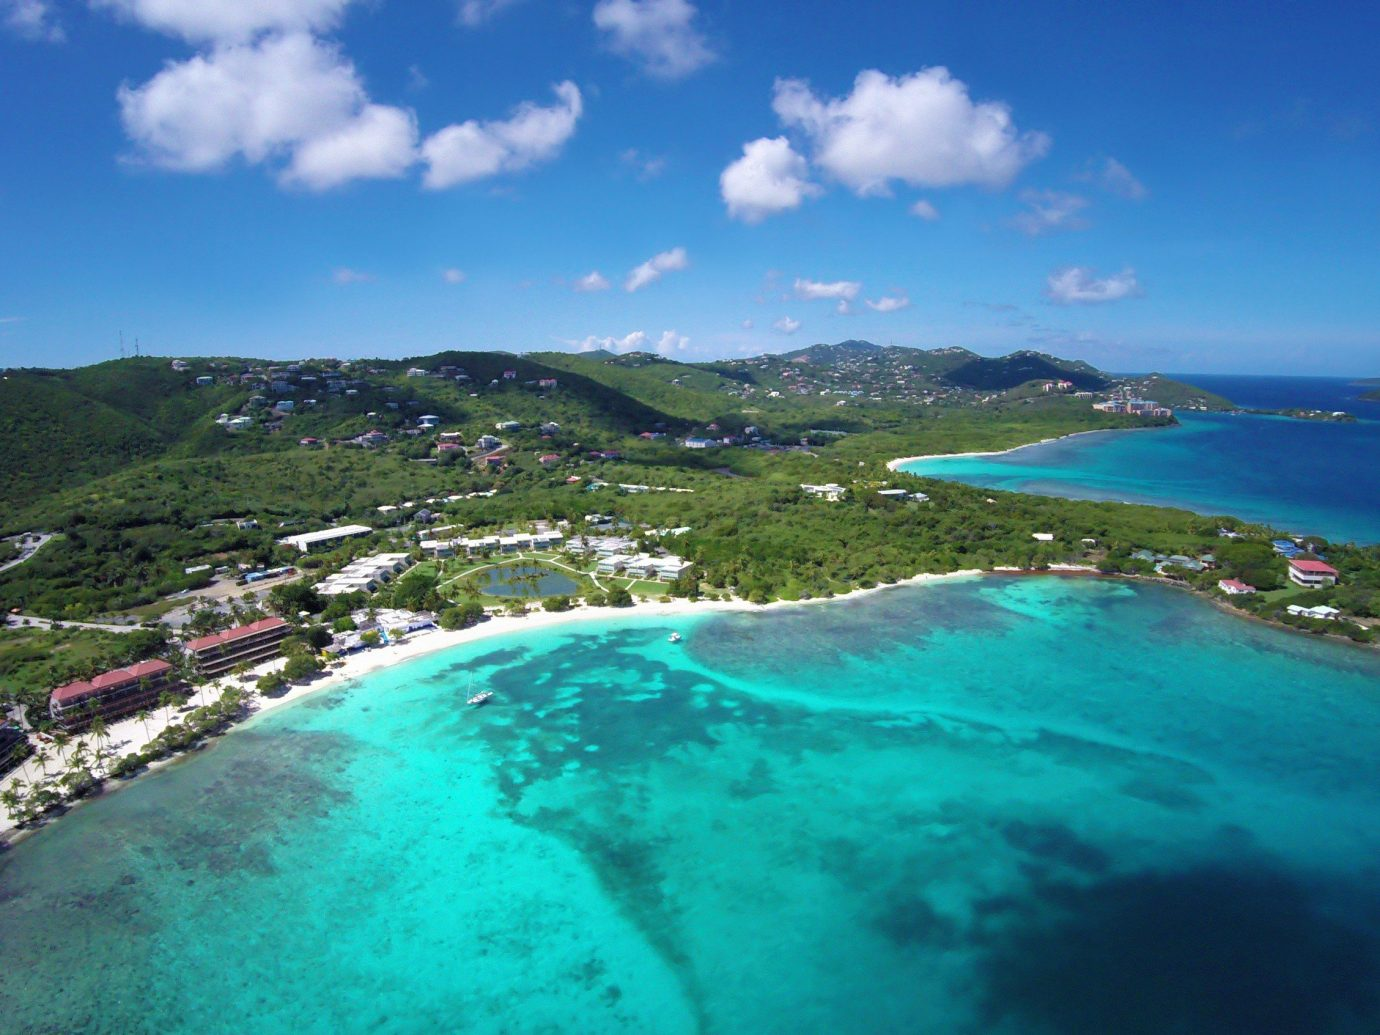 Trip Ideas sky water outdoor Nature geographical feature landform Coast Sea promontory body of water mountain caribbean Ocean Beach bay vacation Island cape archipelago islet Lagoon cove reef overlooking